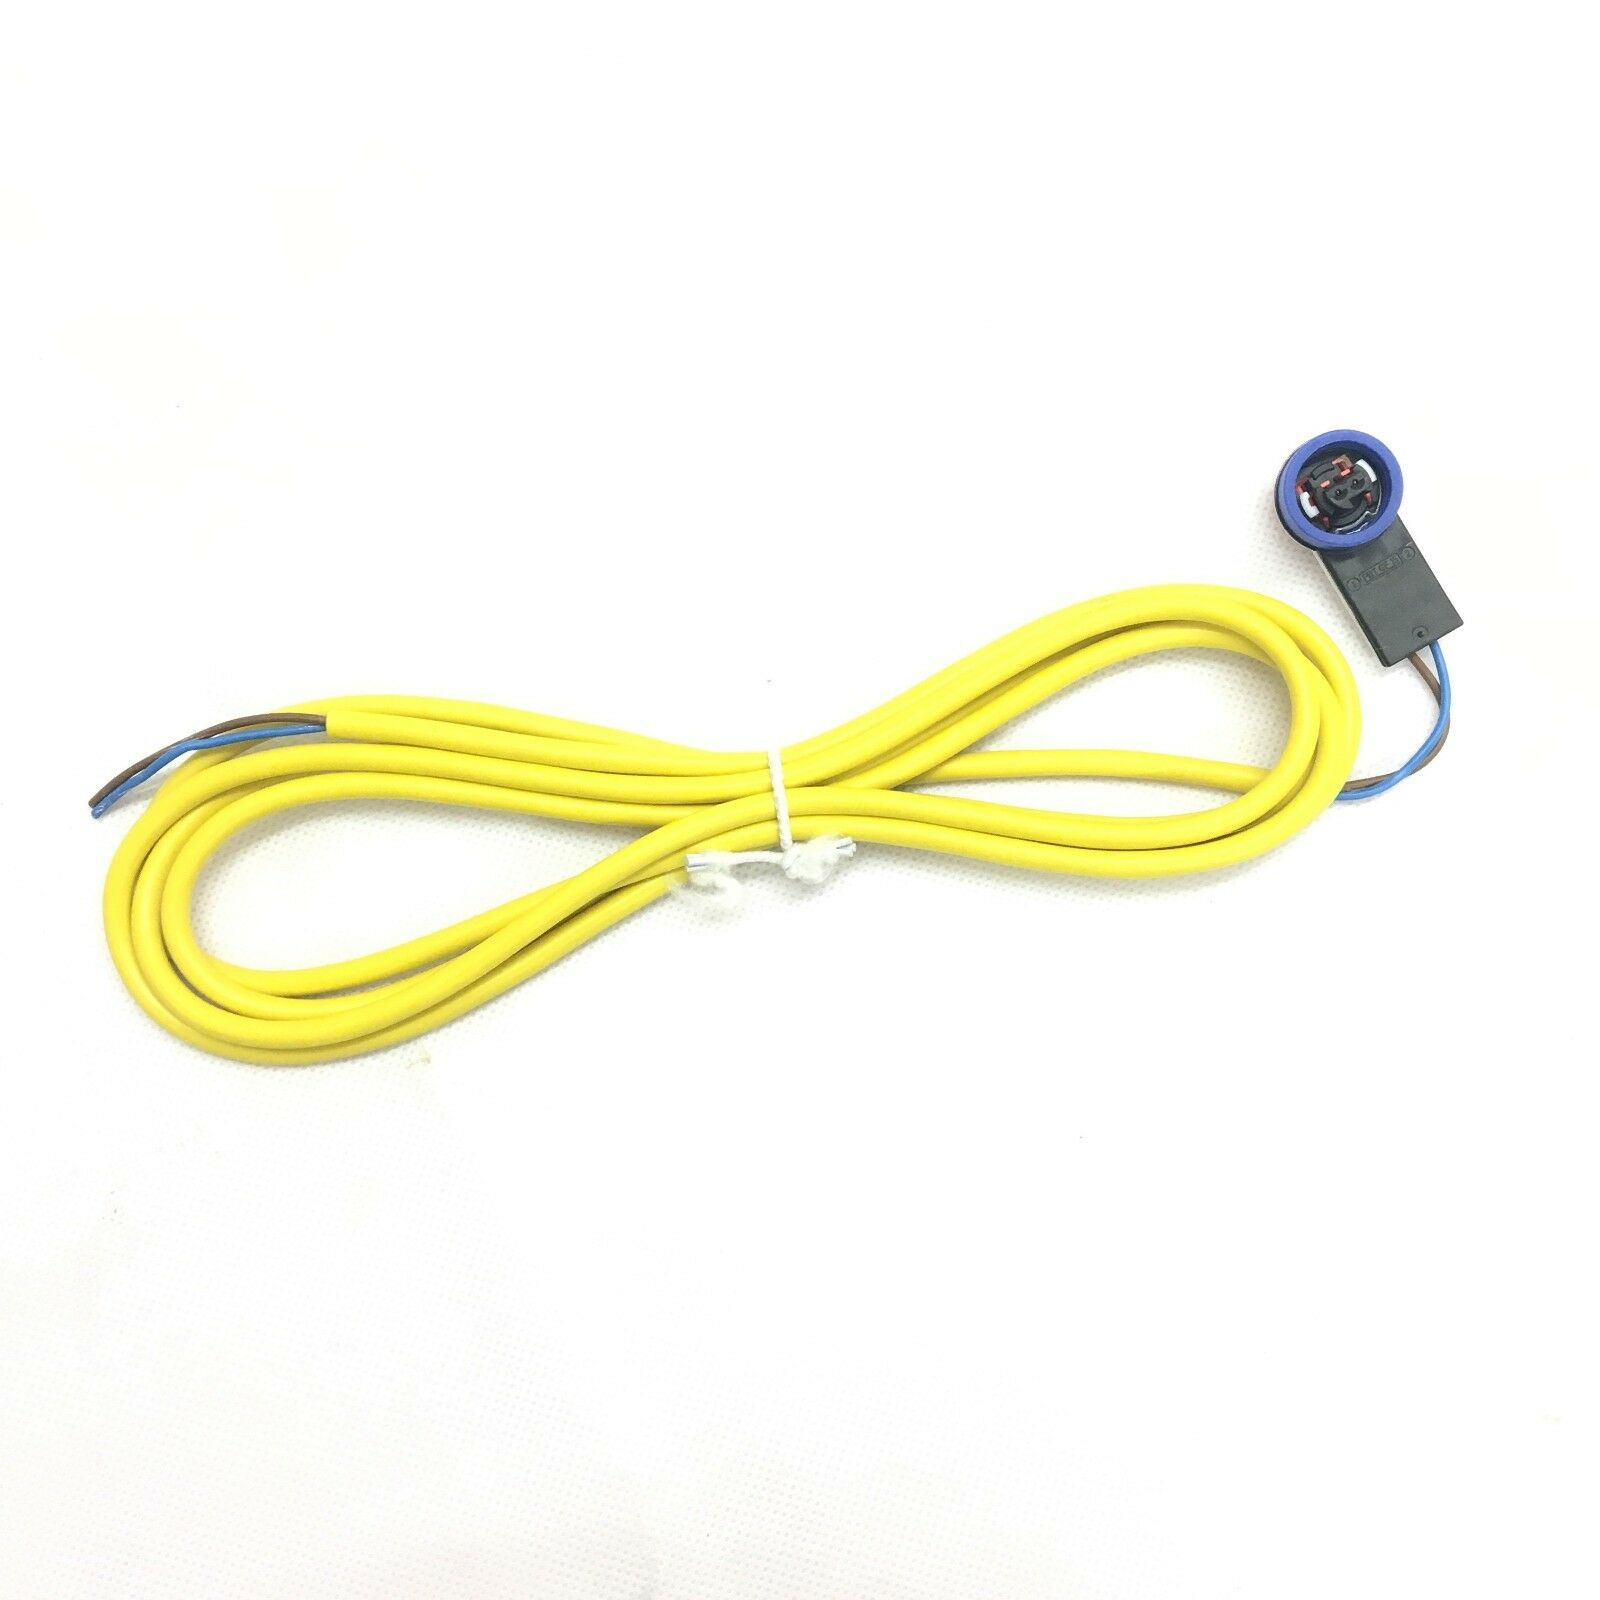 New Genuine Mercedes Benz Rs Elec Wiring Harness Battery Terminal A2044401854 1 Of 3only Available